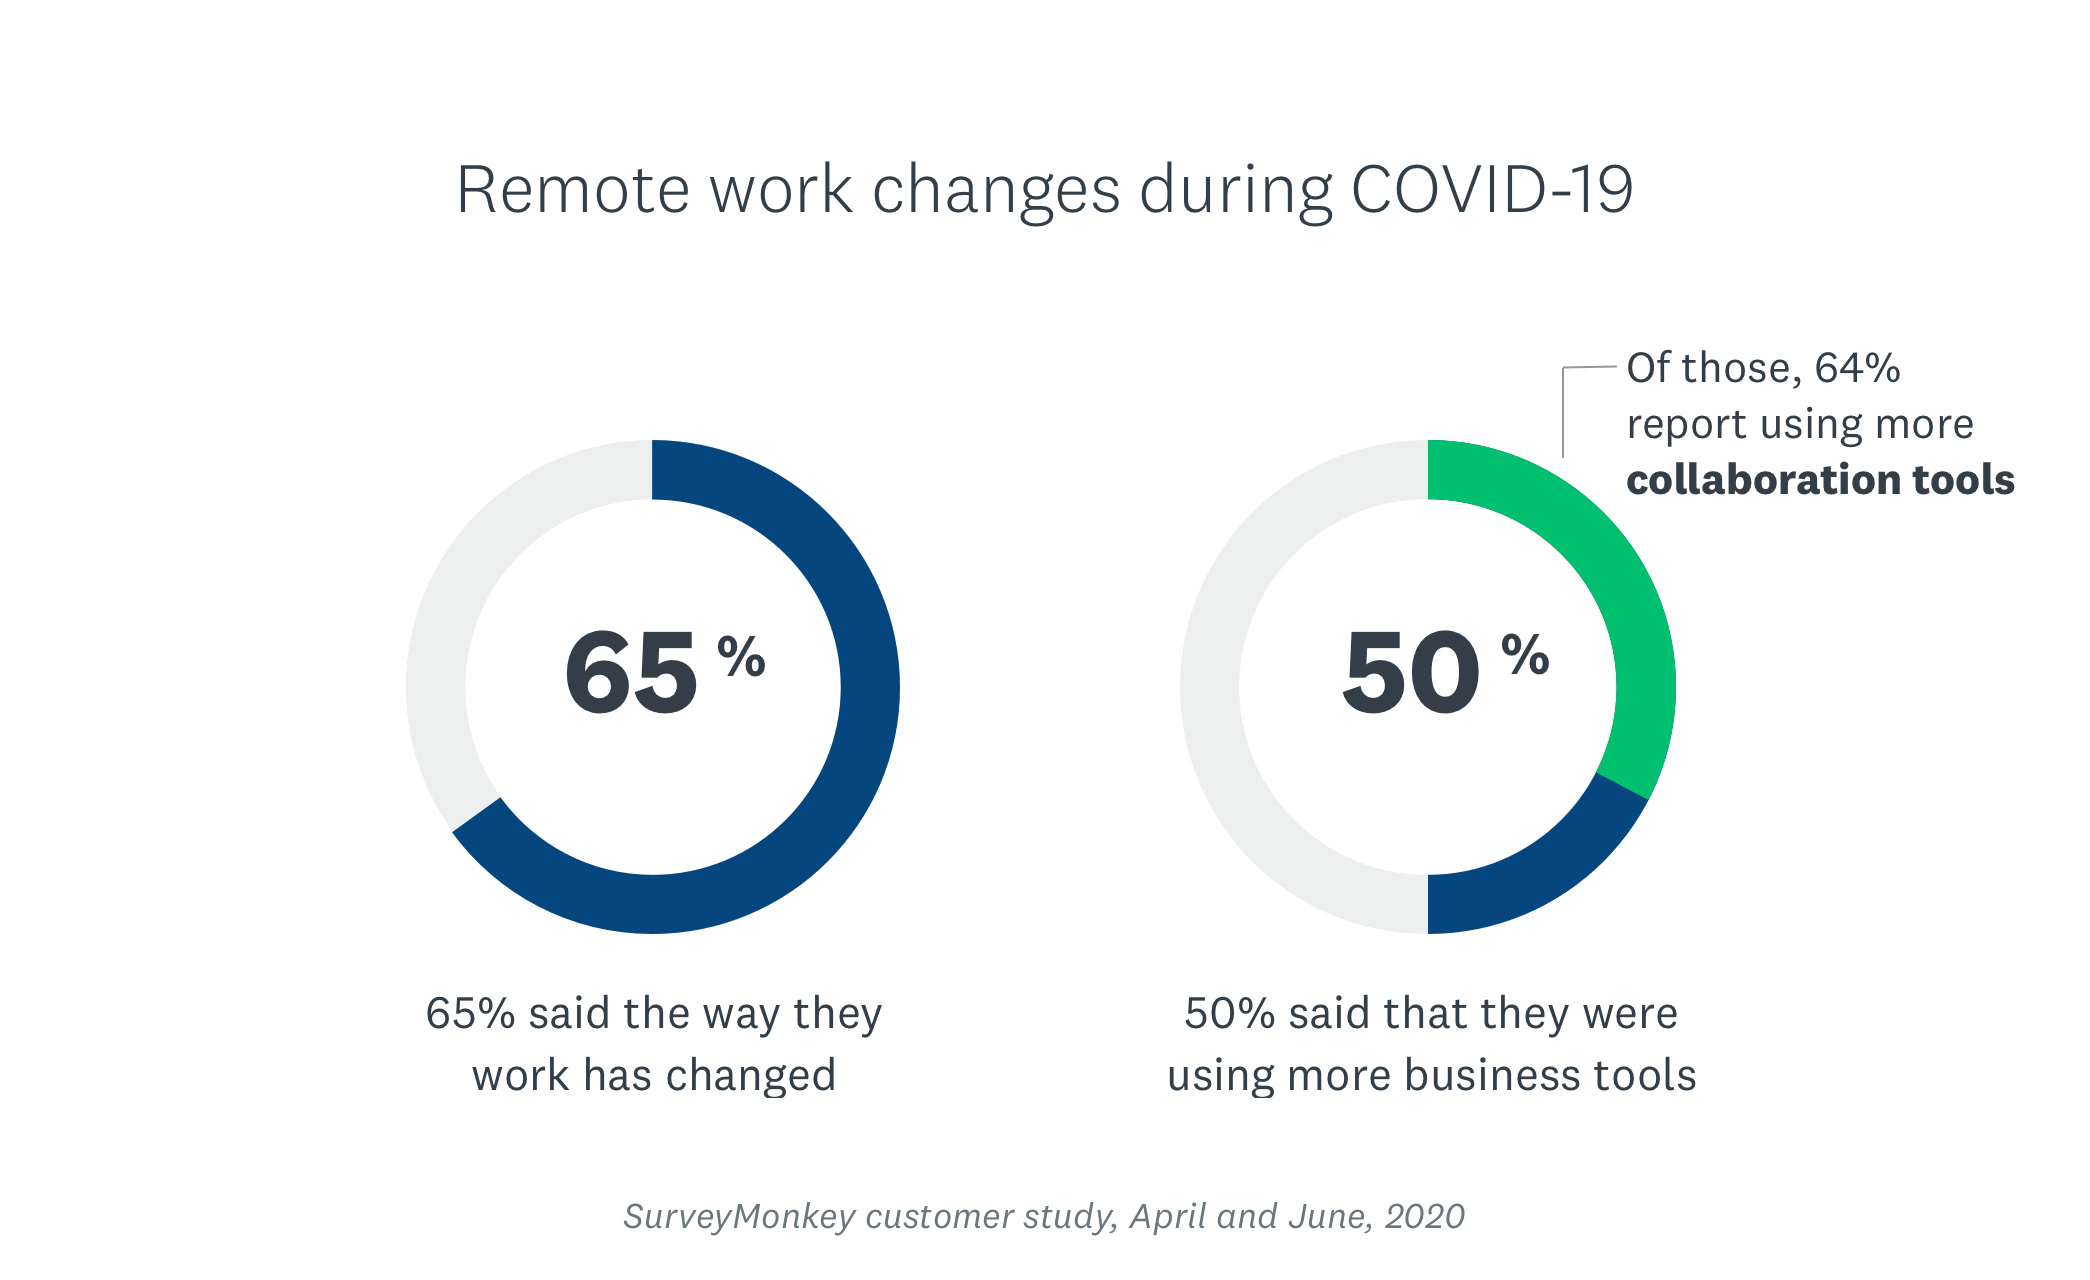 chart showing how work has changed during COVID-19